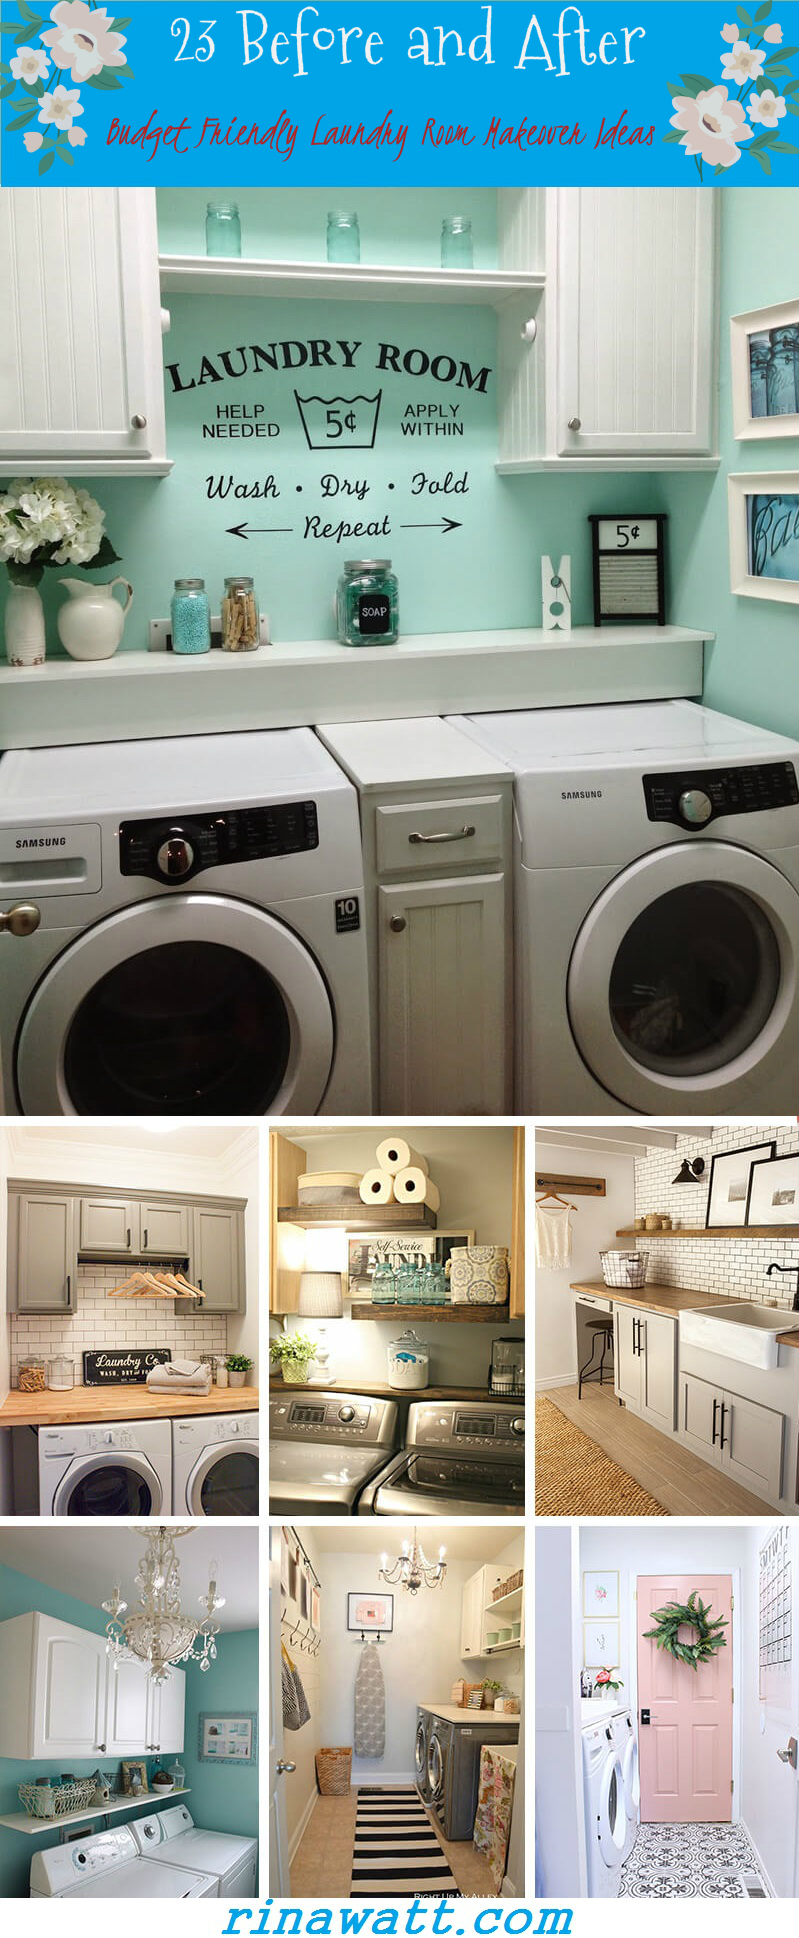 11 Before and After: Budget Friendly Laundry Room Makeover Ideas